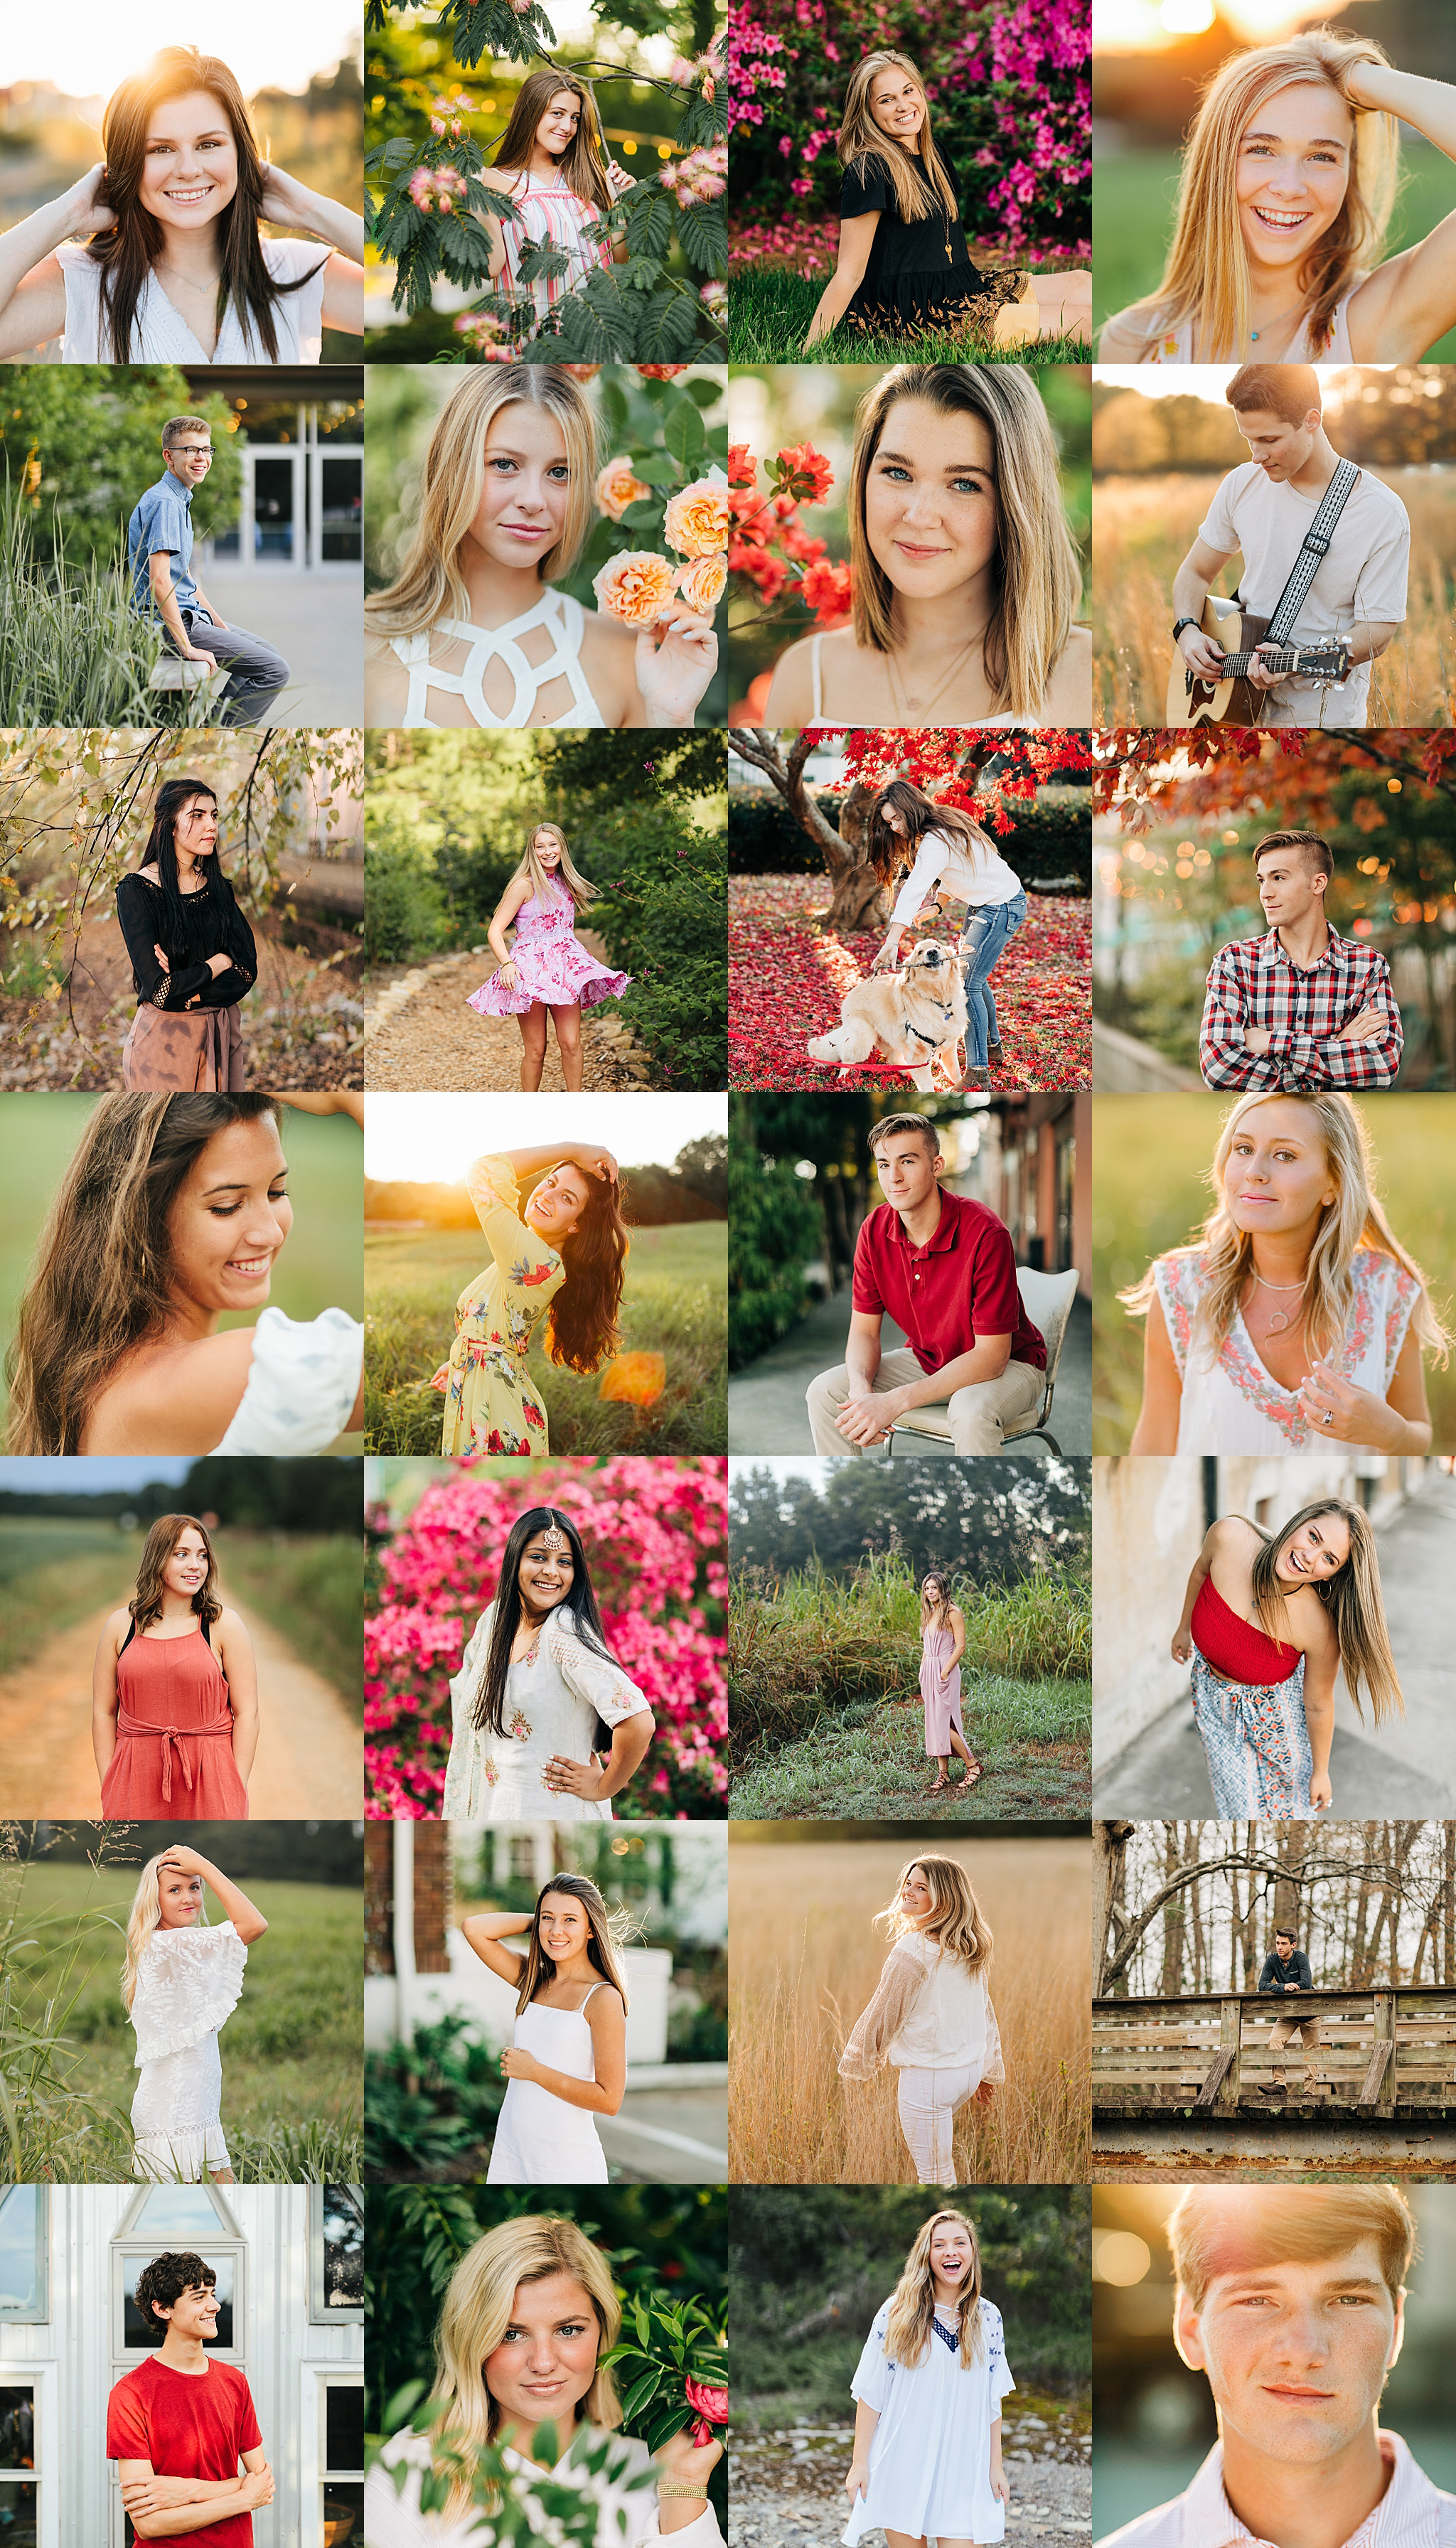 Class of 2019 - click to see more